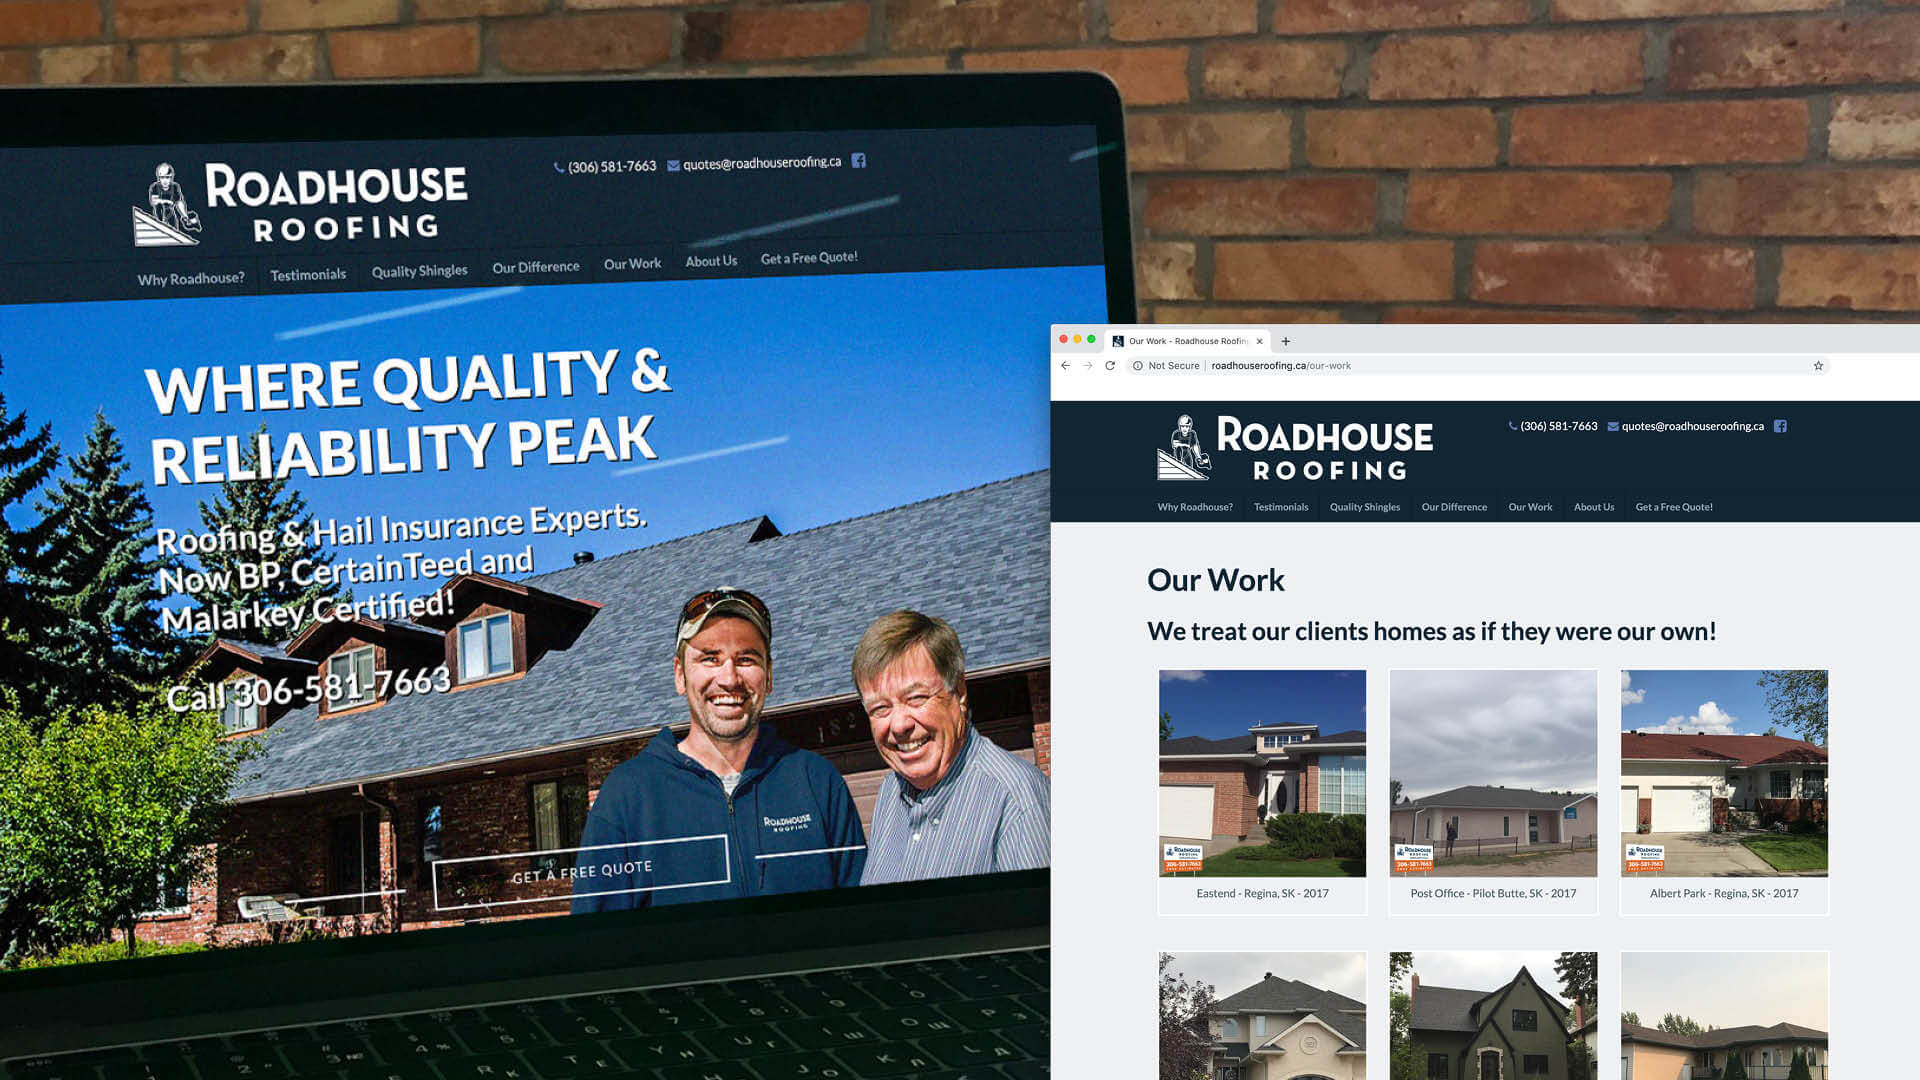 Roadhouse Roofing, Website, Roadhouse Roofing Website, Portfolio Image,